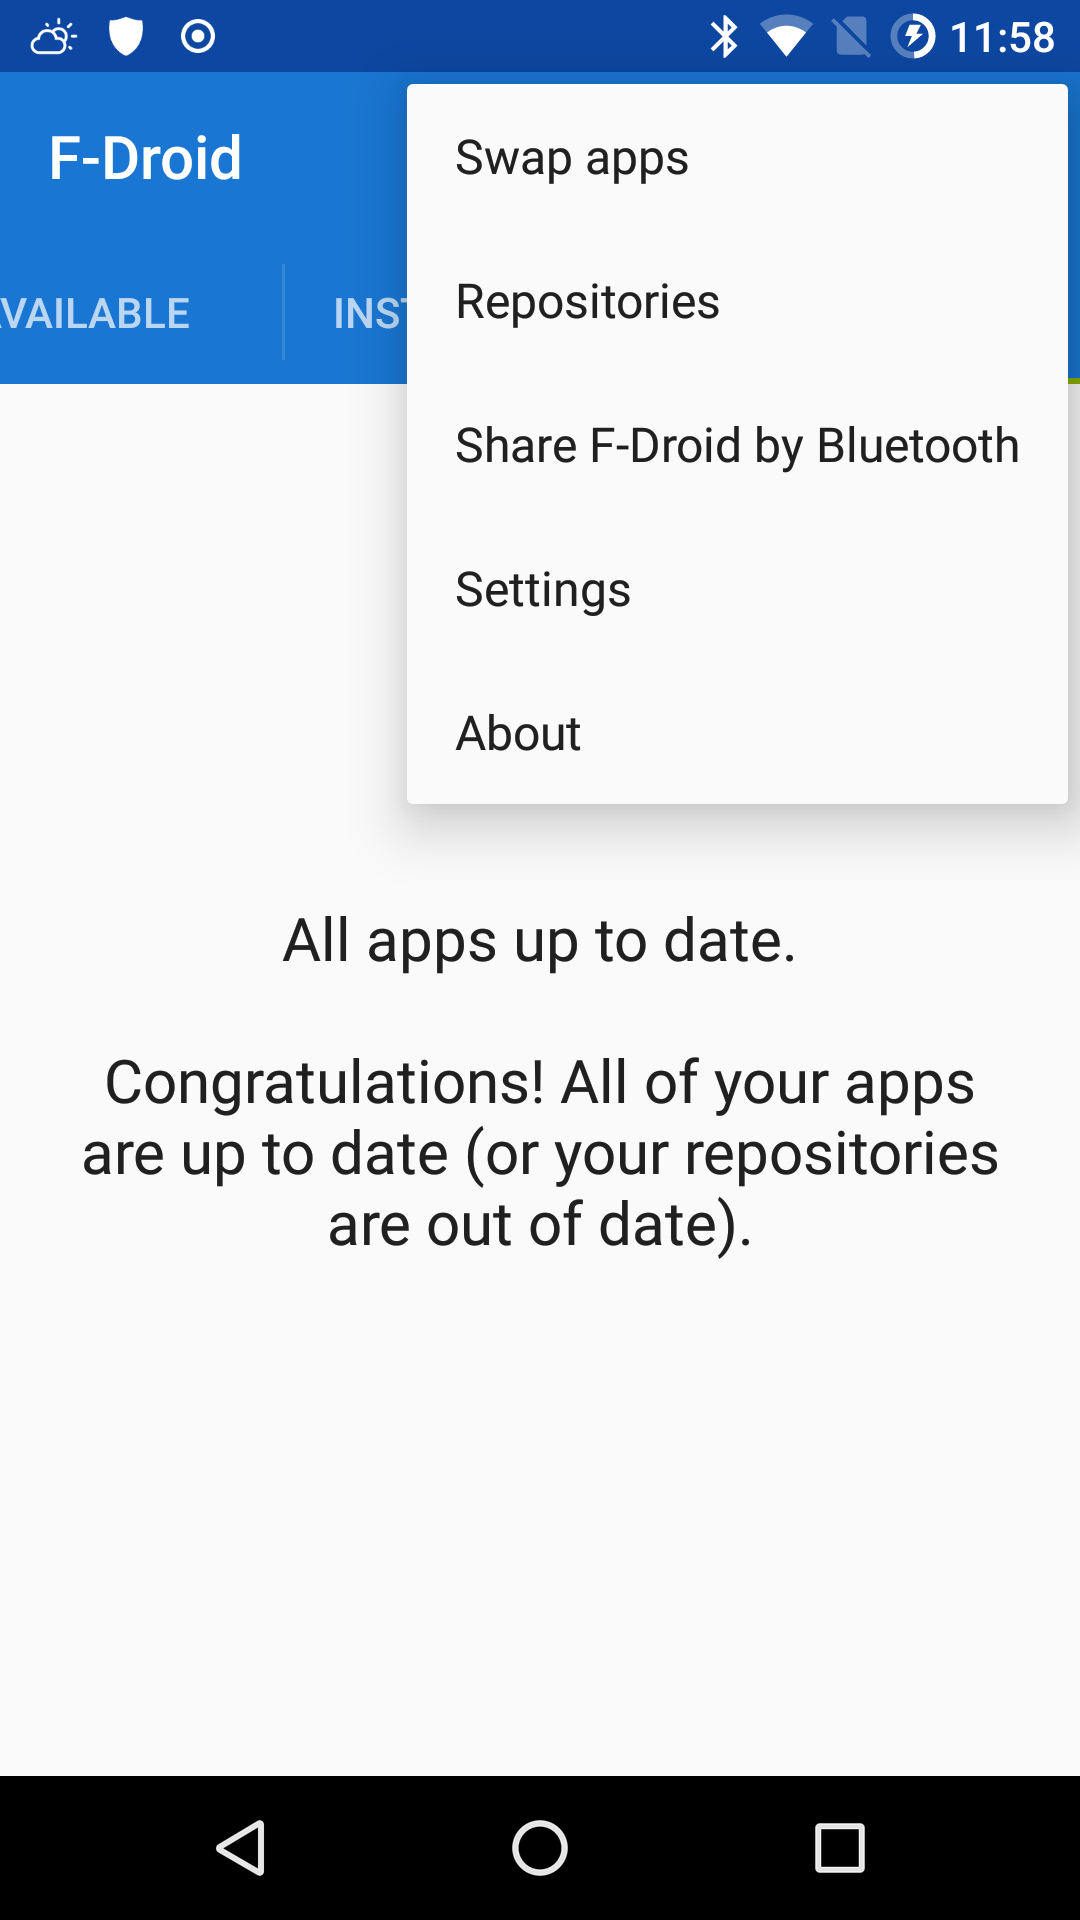 Serve And Share Apps From Your Phone With Fdroid - Trent Docs